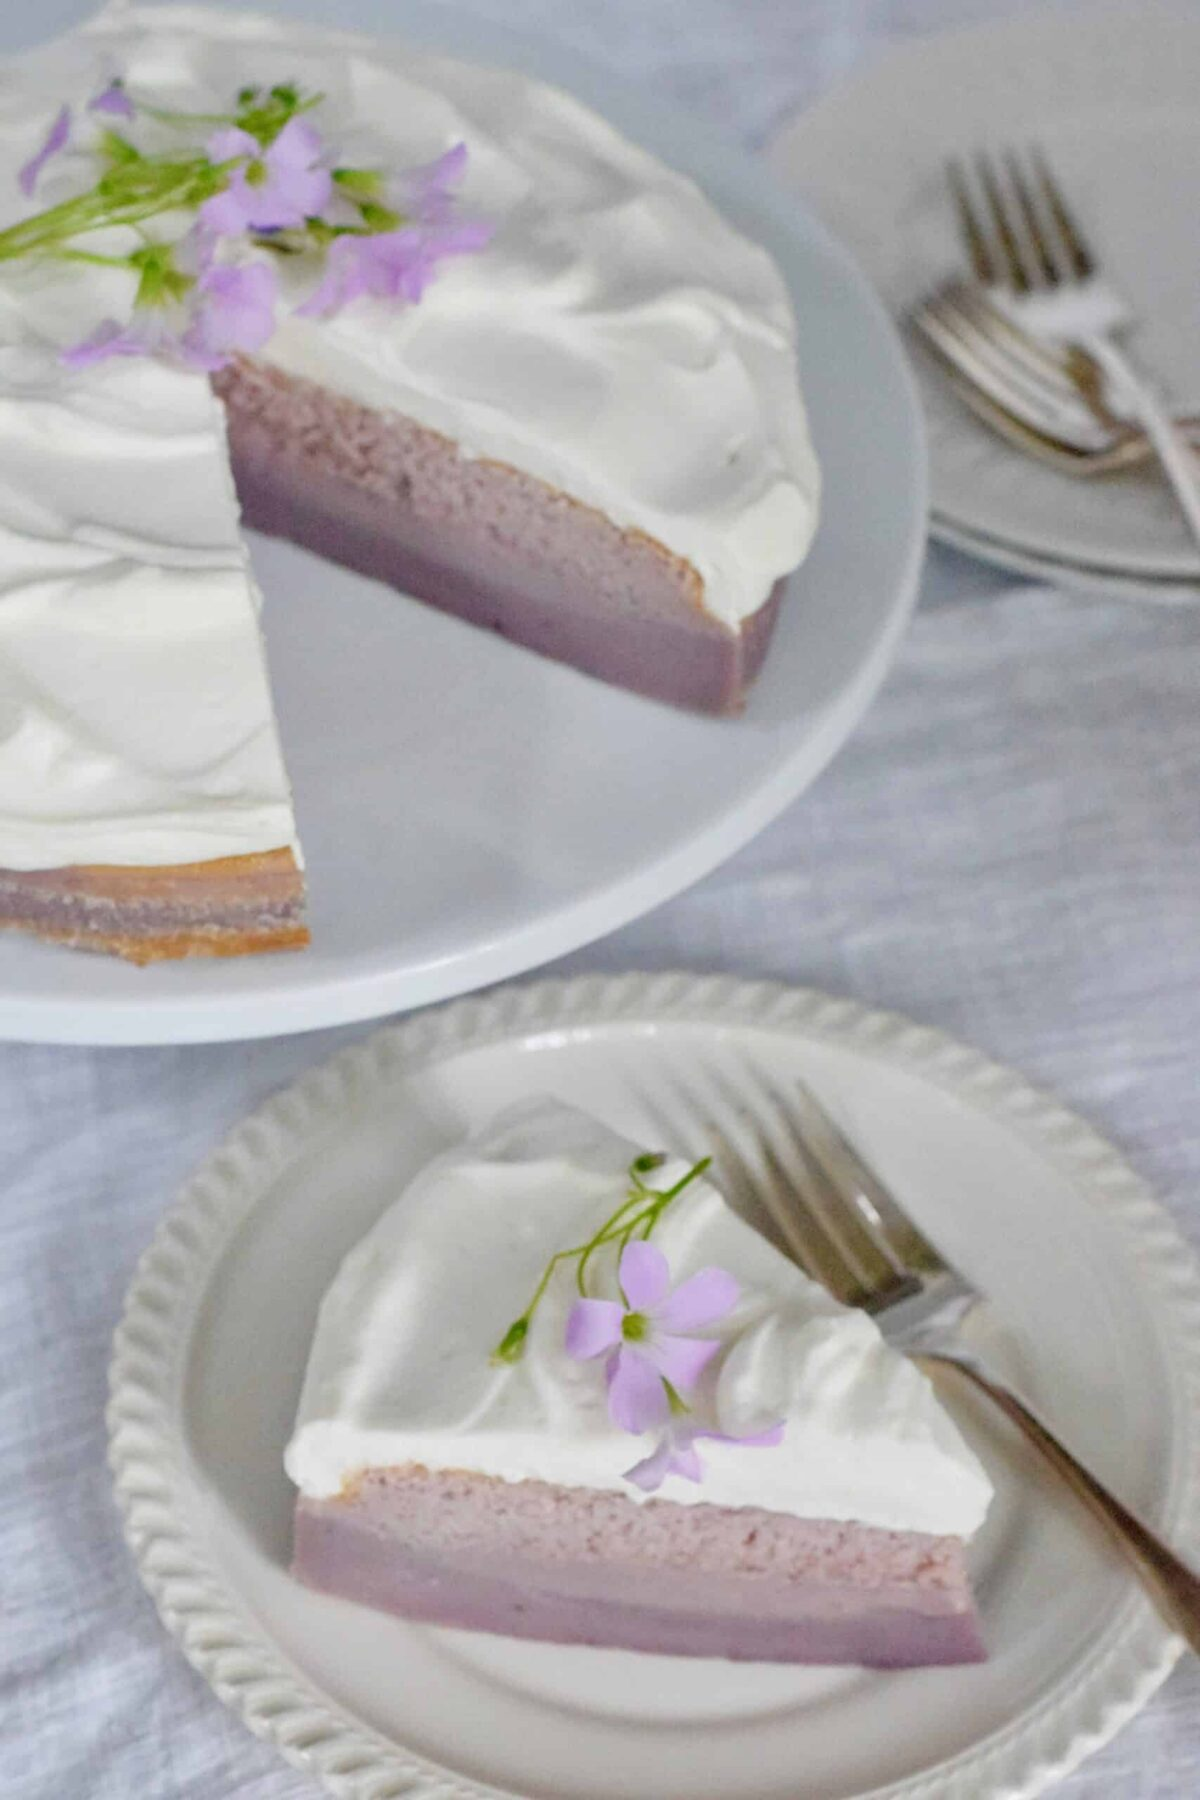 Purple Sweet potato Magic Cake with a slice cut and placed on a white plate with forks on a white tablecloth. Garnished with purple oxalis